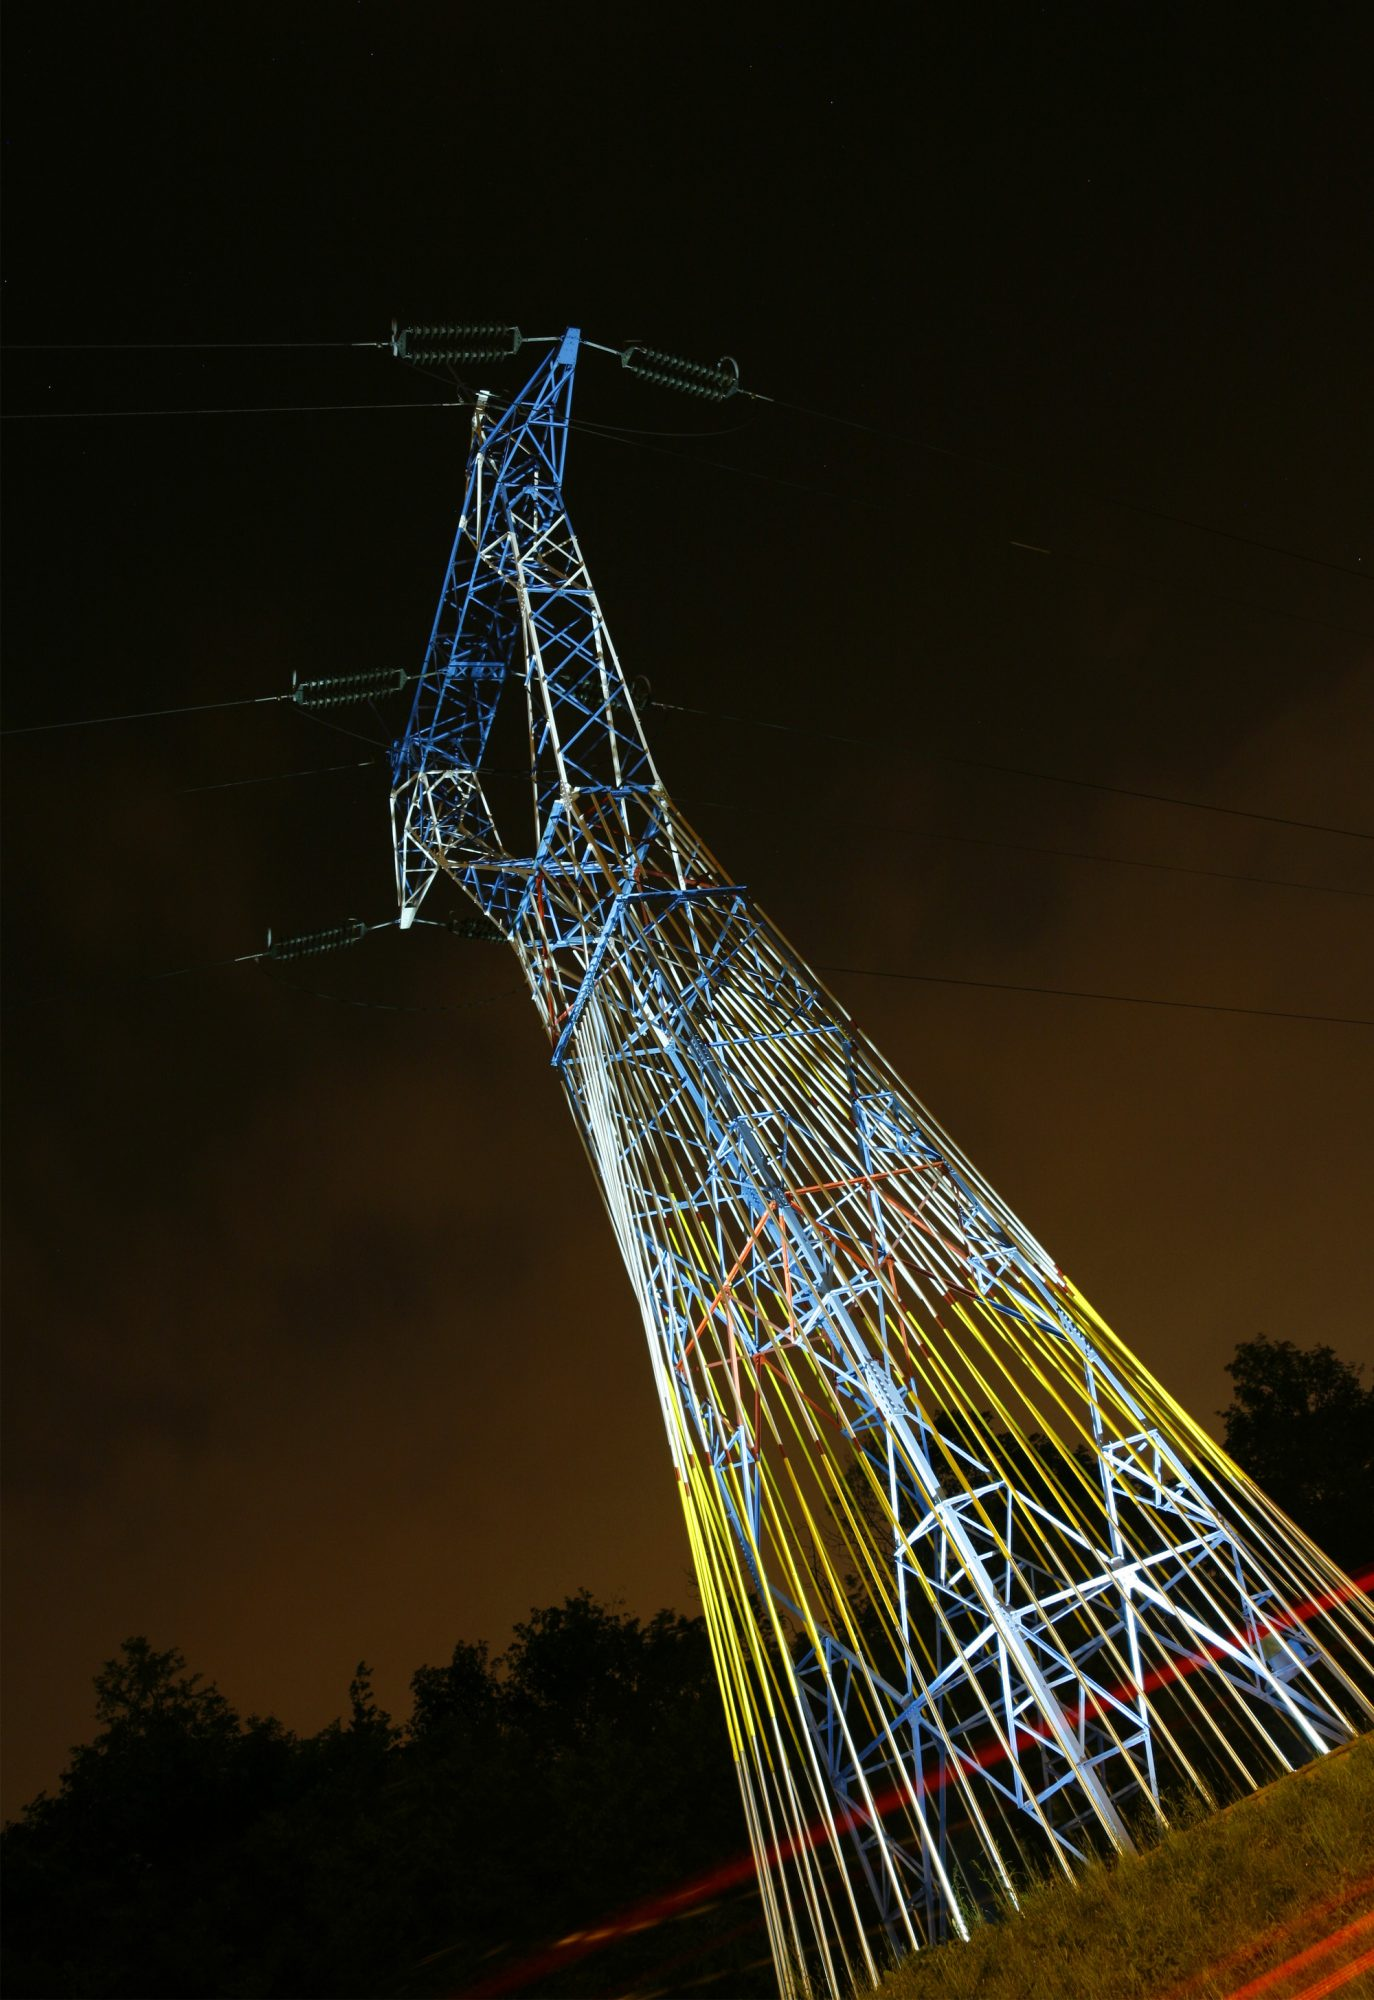 Source-Light pylon nb°11